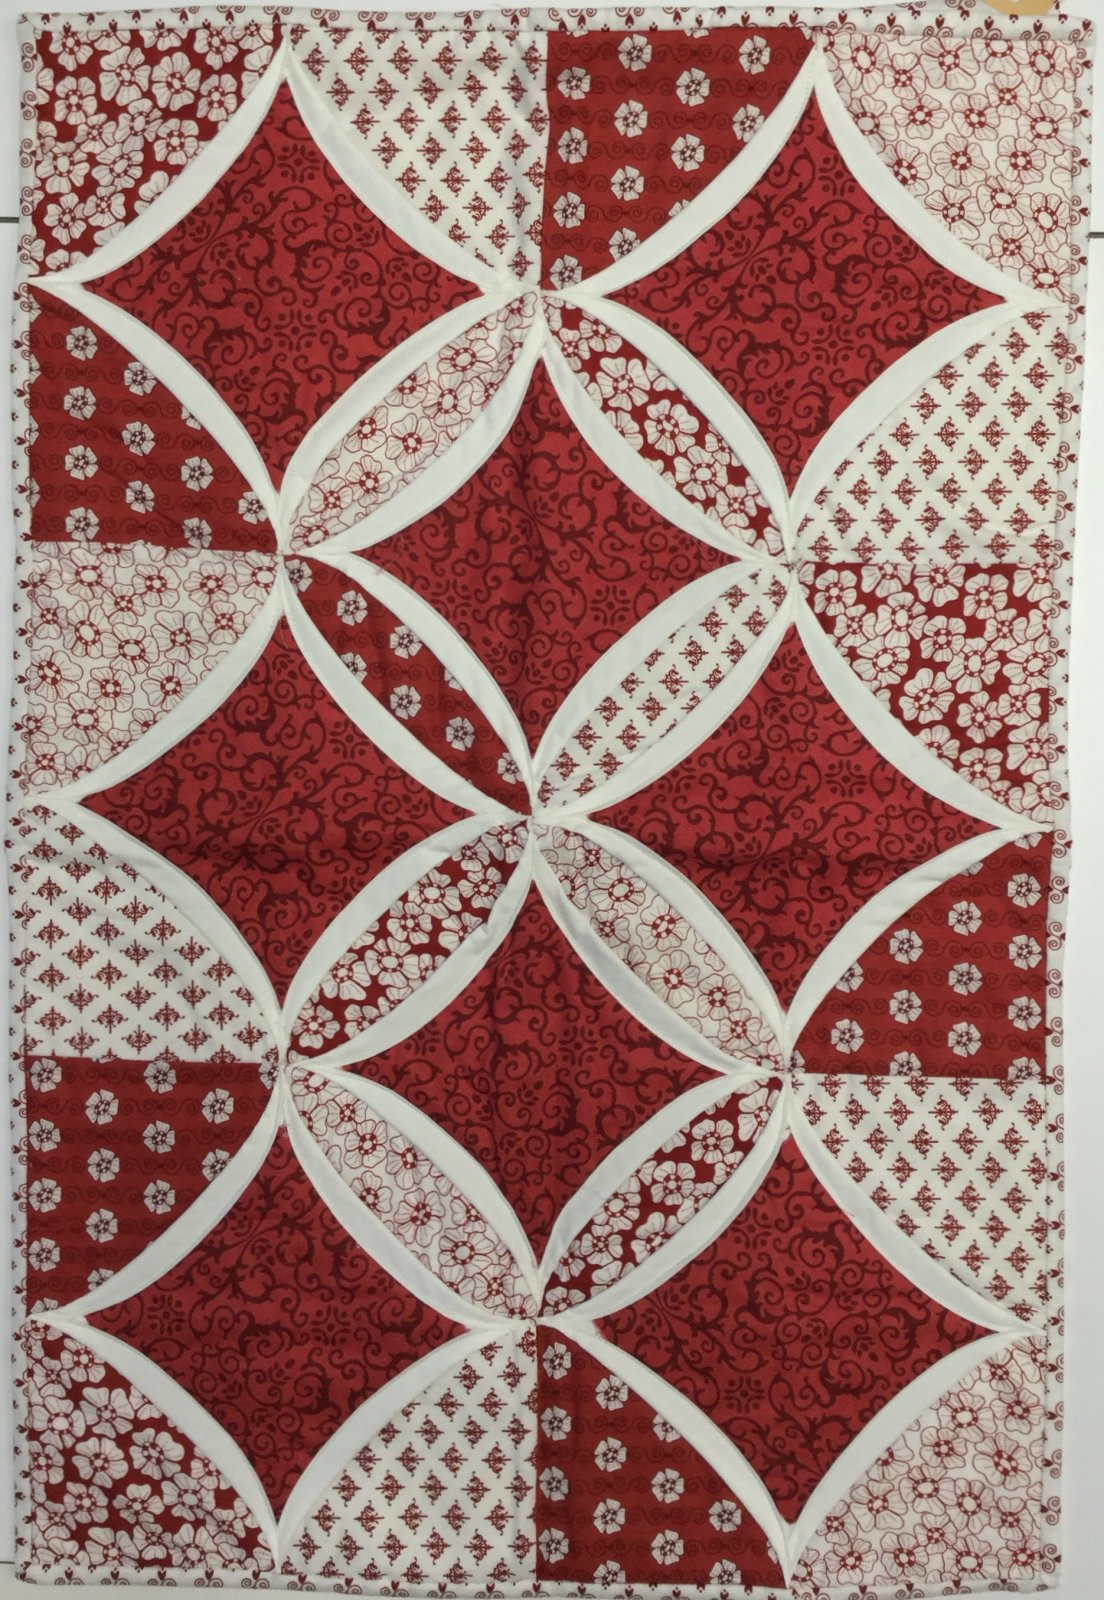 Red Window Wall Hanging (18 x 27)